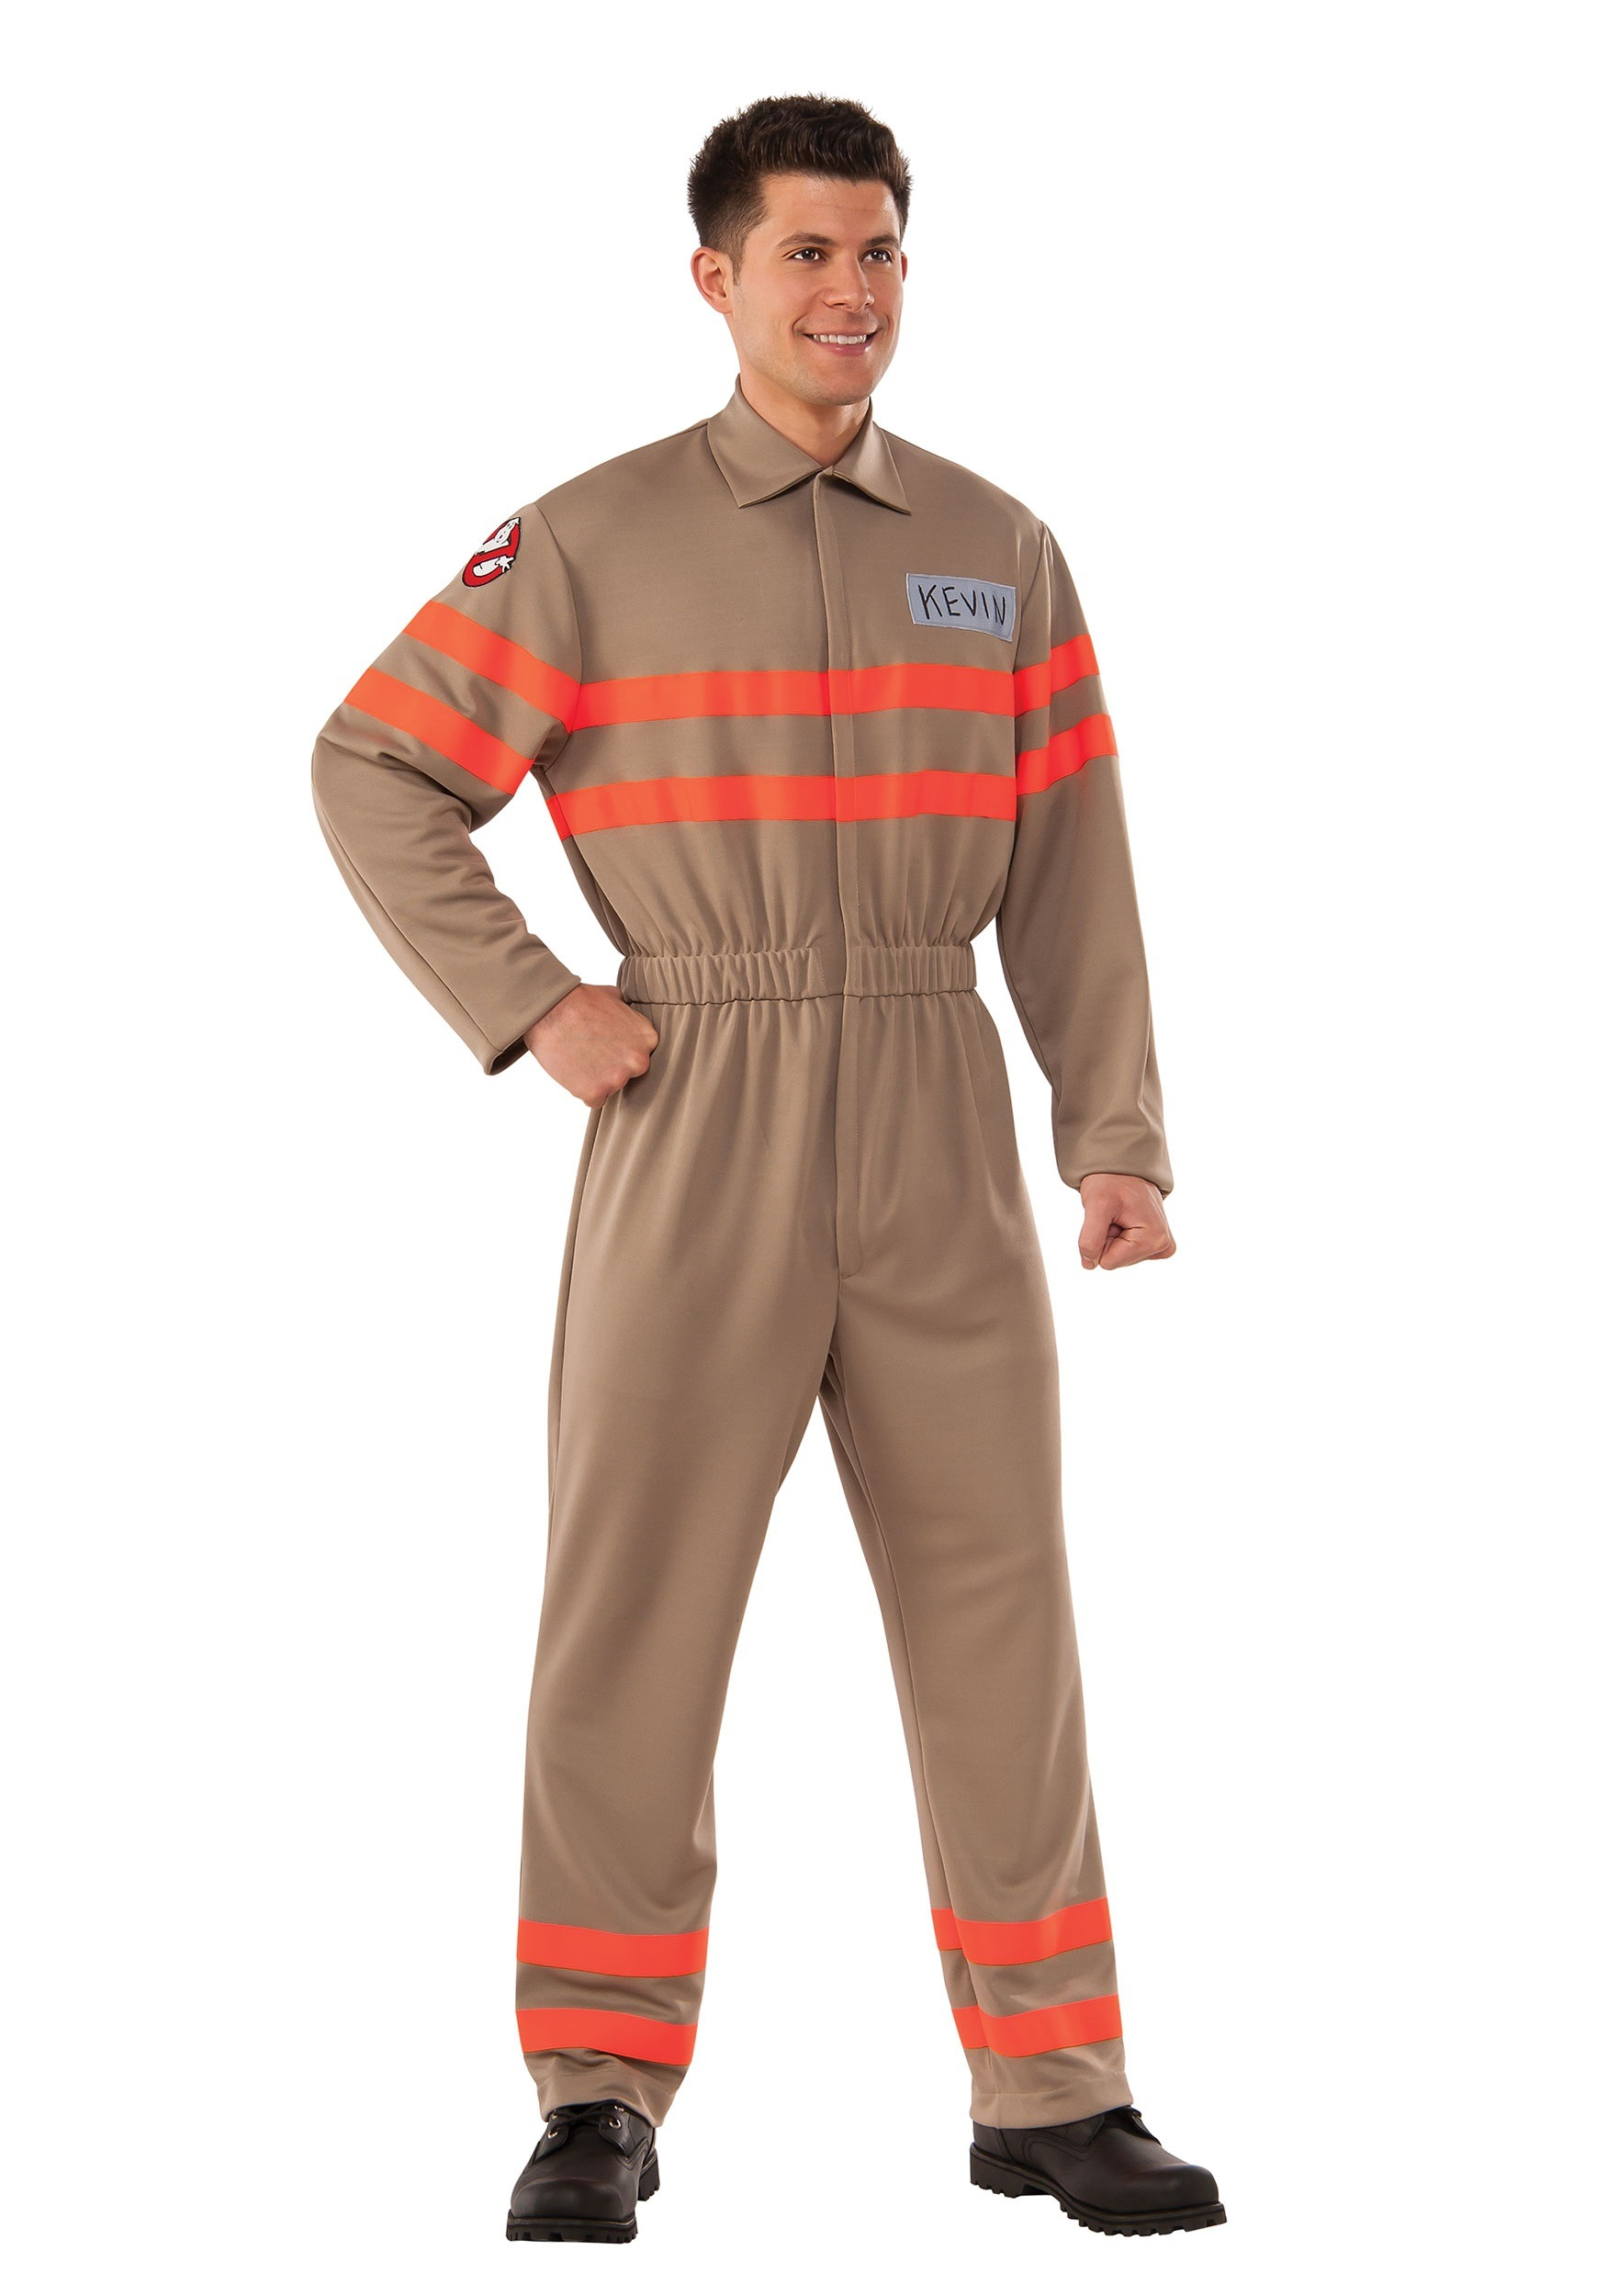 c2d36b86f6b Adult Kevin Ghostbusters Movie Costume